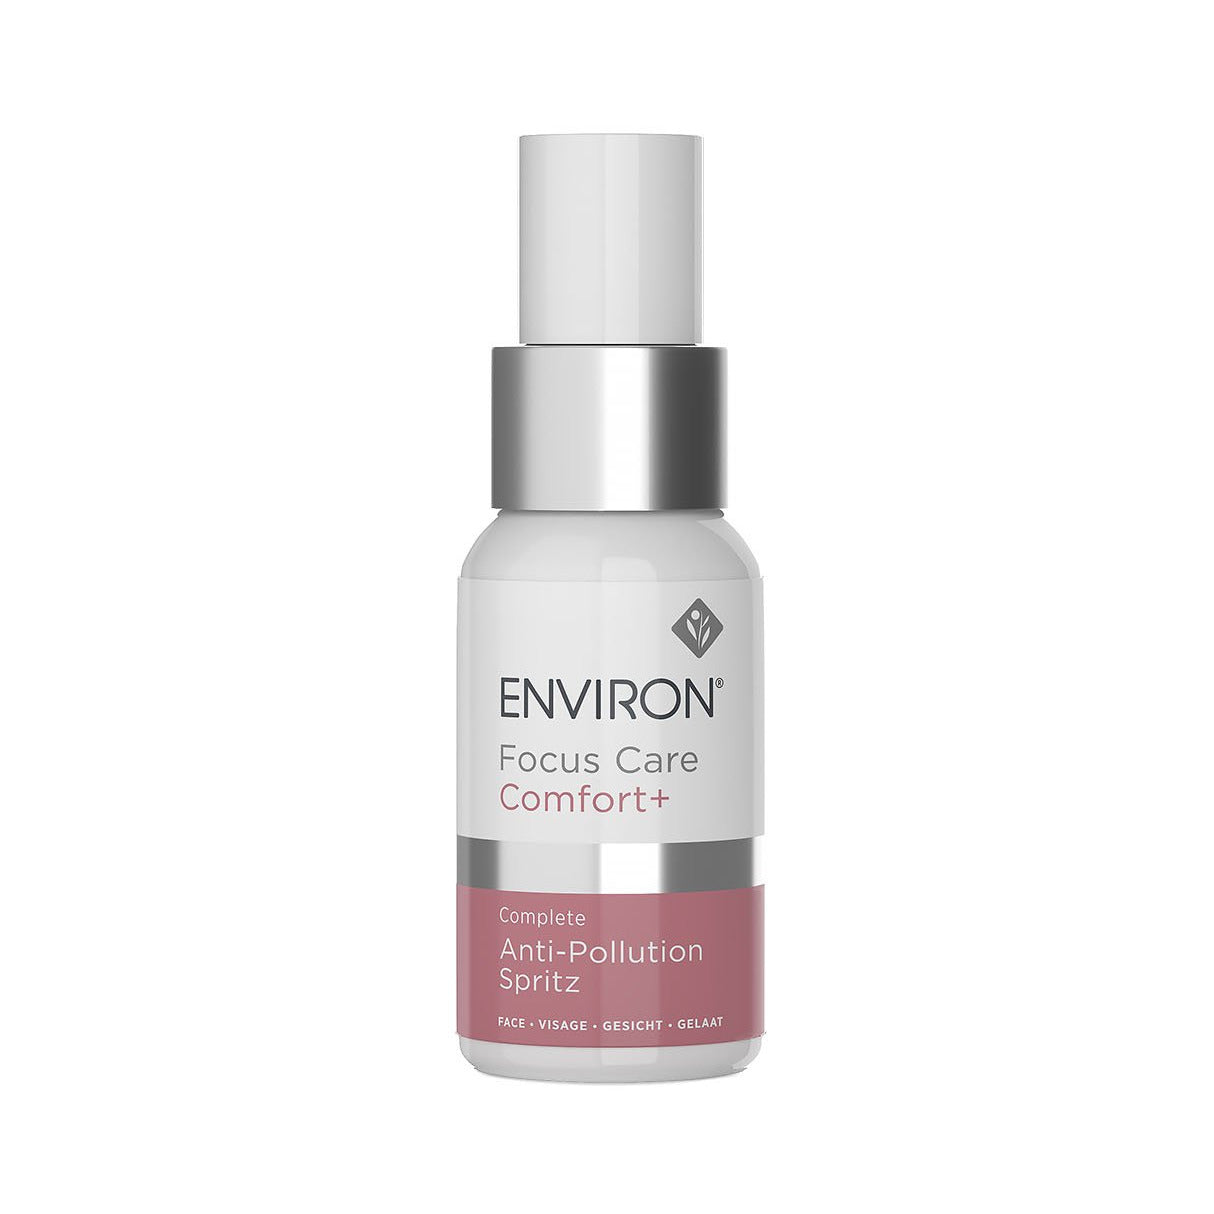 Anti-Pollution Spritz - Environ